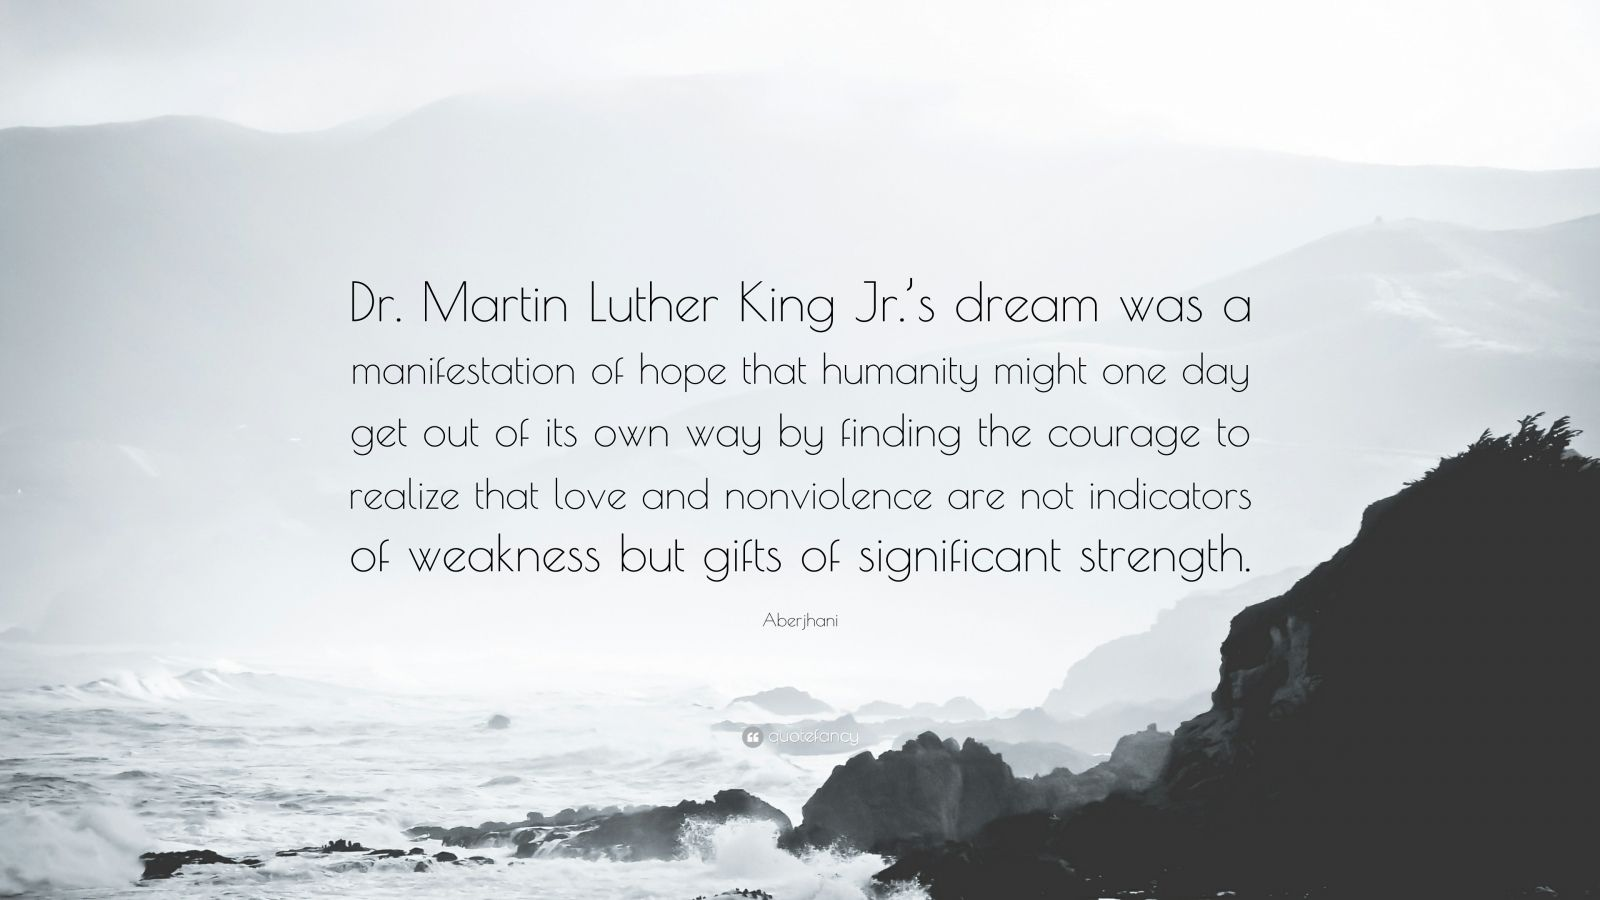 """Aberjhani Quote: """"Dr. Martin Luther King Jr.'s dream was a manifestation of hope that humanity might one day get out of its own way by finding the courage to realize that love and nonviolence are not indicators of weakness but gifts of significant strength."""""""